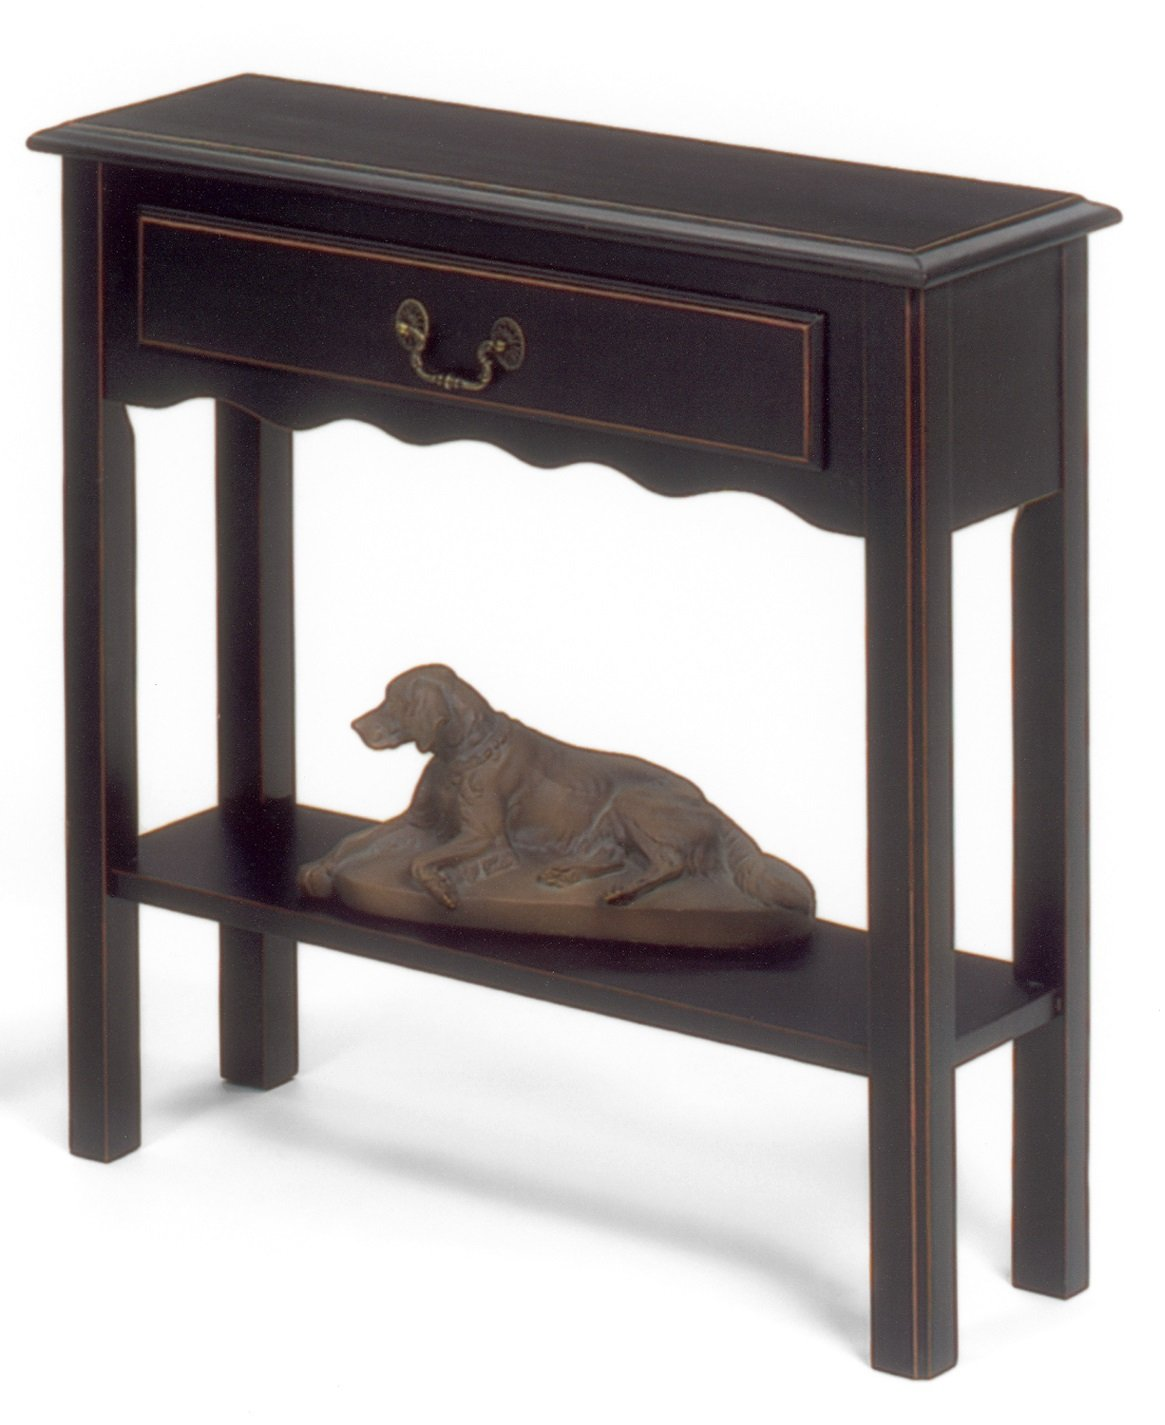 Heartwood Crossing Console Table, 28''W x 10''D x 28''H, Black by Heartwood Crossing